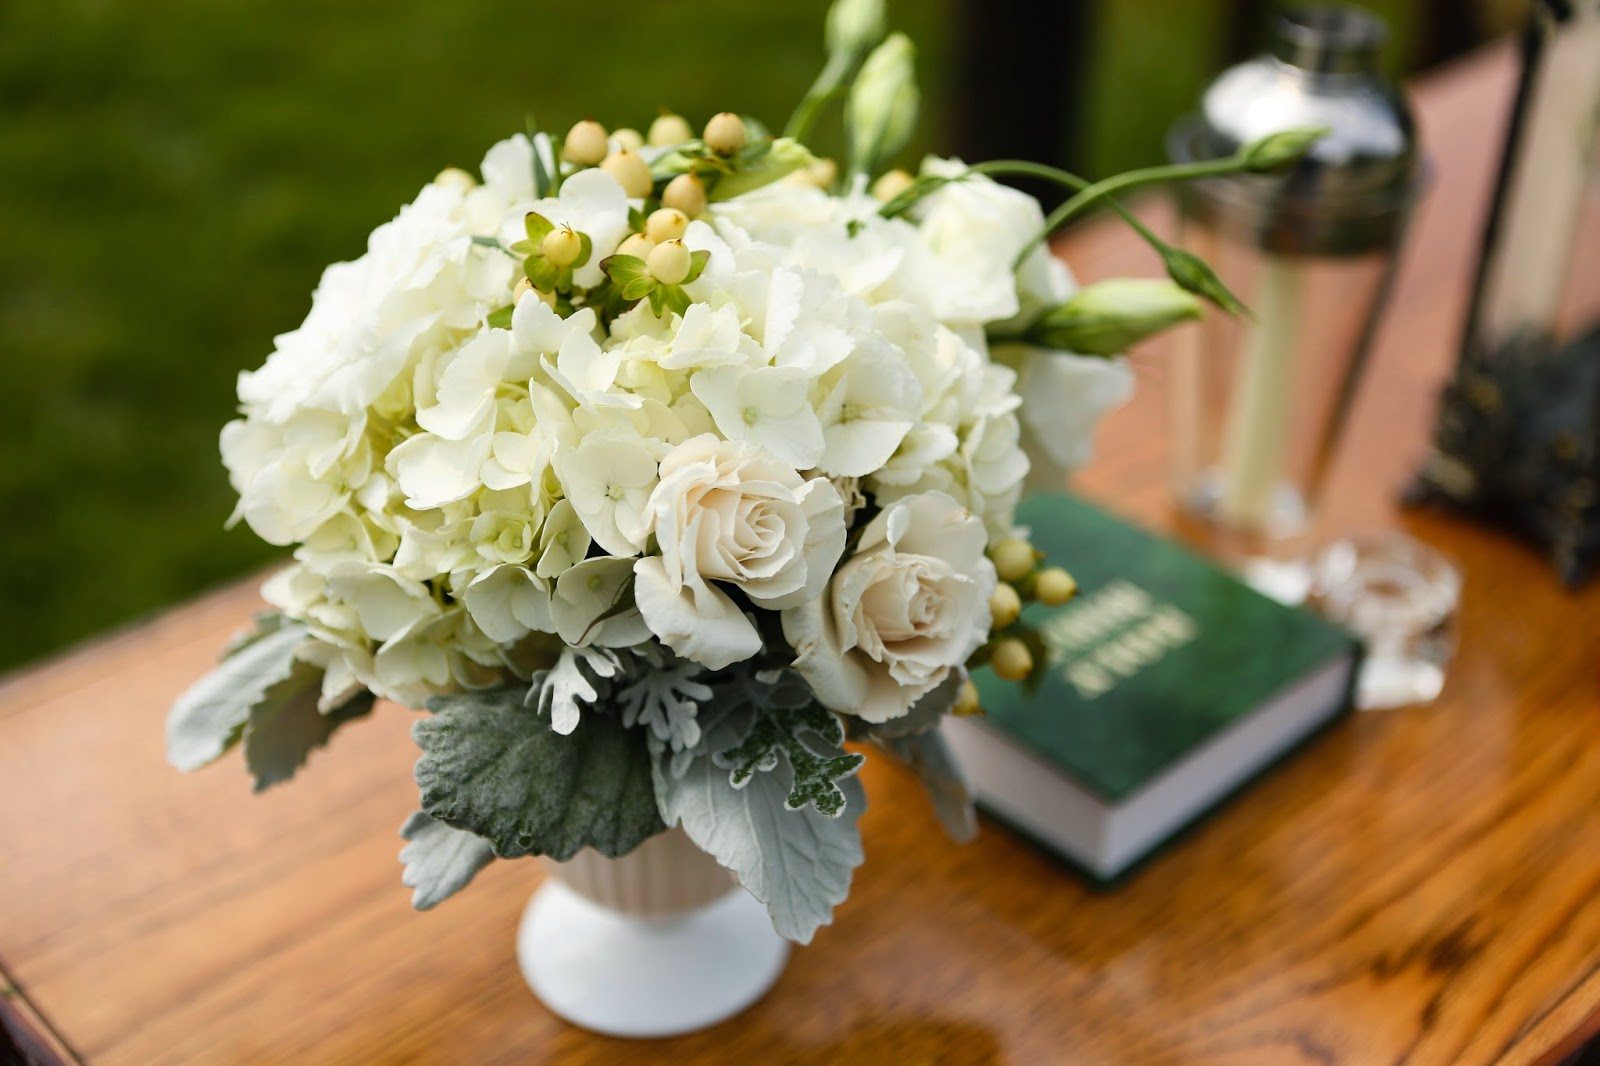 Lake Placid Wedding - The Whiteface Lodge Wedding - Ceremony Arrangement - Upstate NY Wedding - Splendid Stems Floral Designs